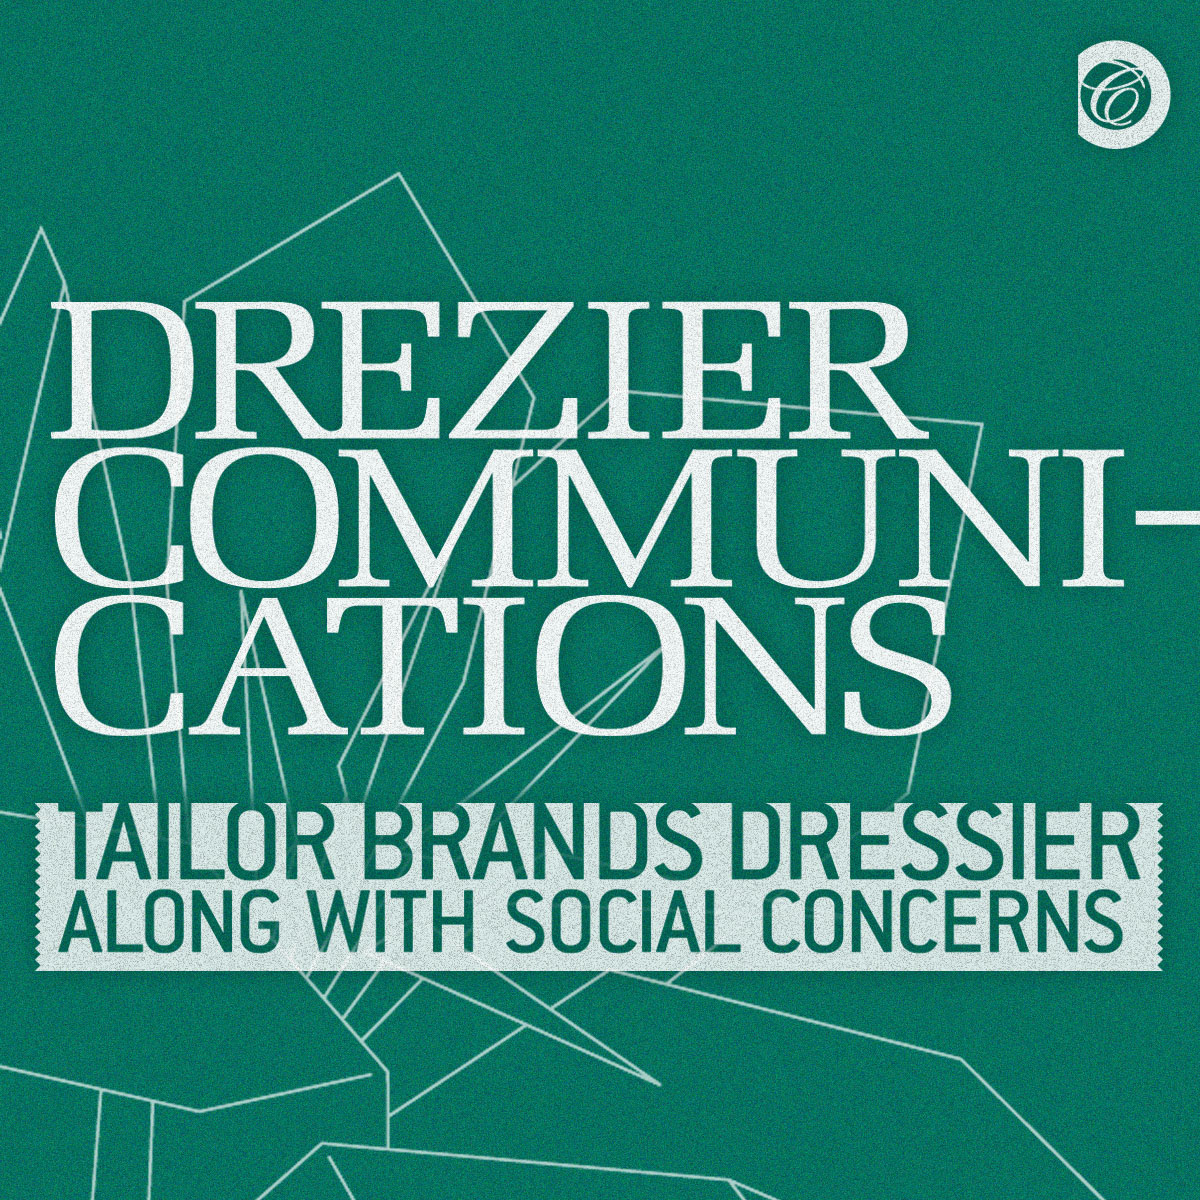 Drezier Communications, alias Drezier Atelier, is an edgy yet savvy branding & design studio based in Hong Kong. We tailor brands dressier along with social concerns. Still the Planet matters.